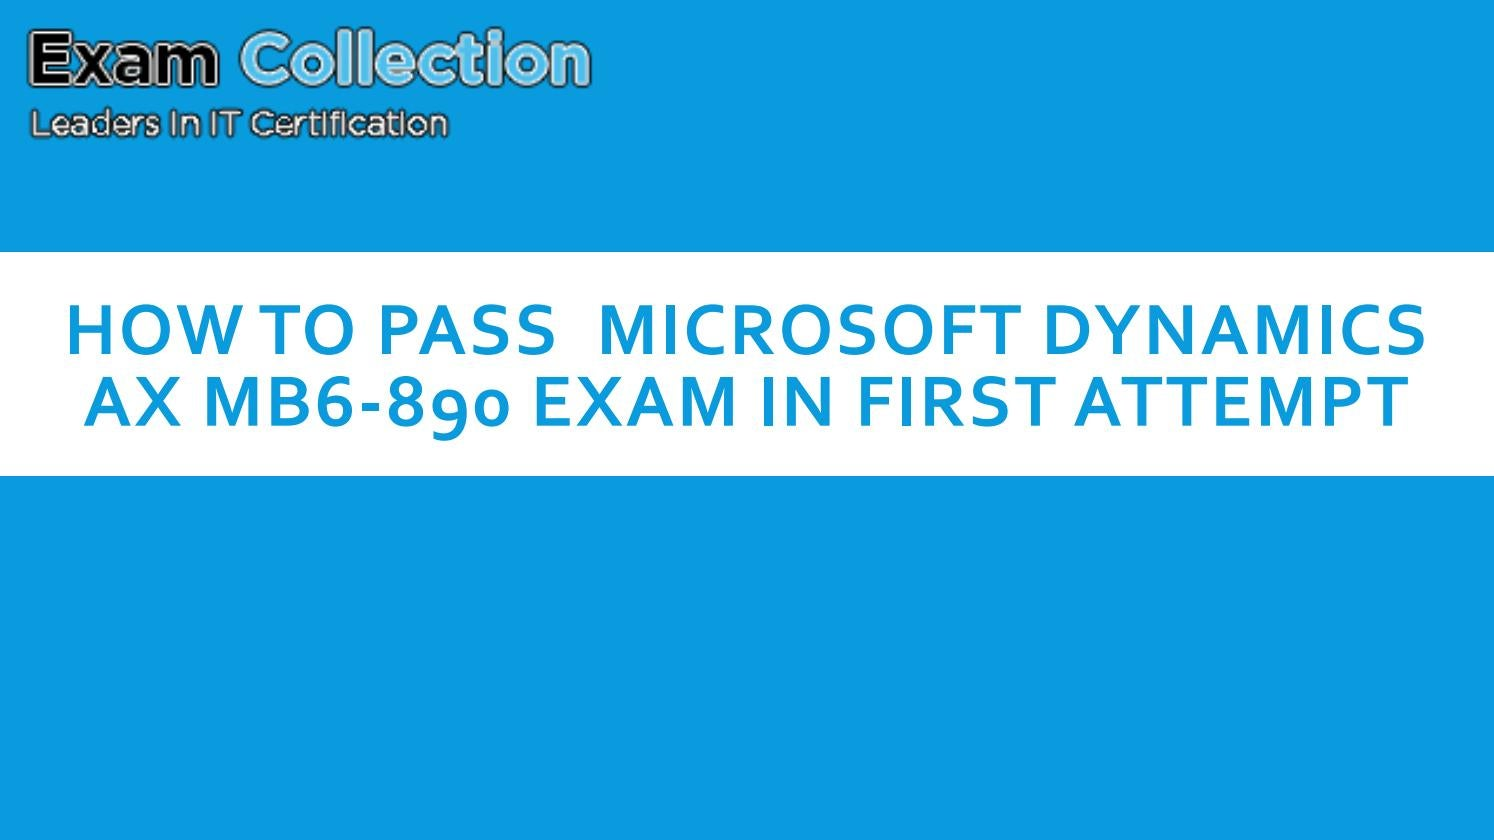 How To Pass Microsoft Dynamics Ax Mb6 890 Exam In First Attempt By